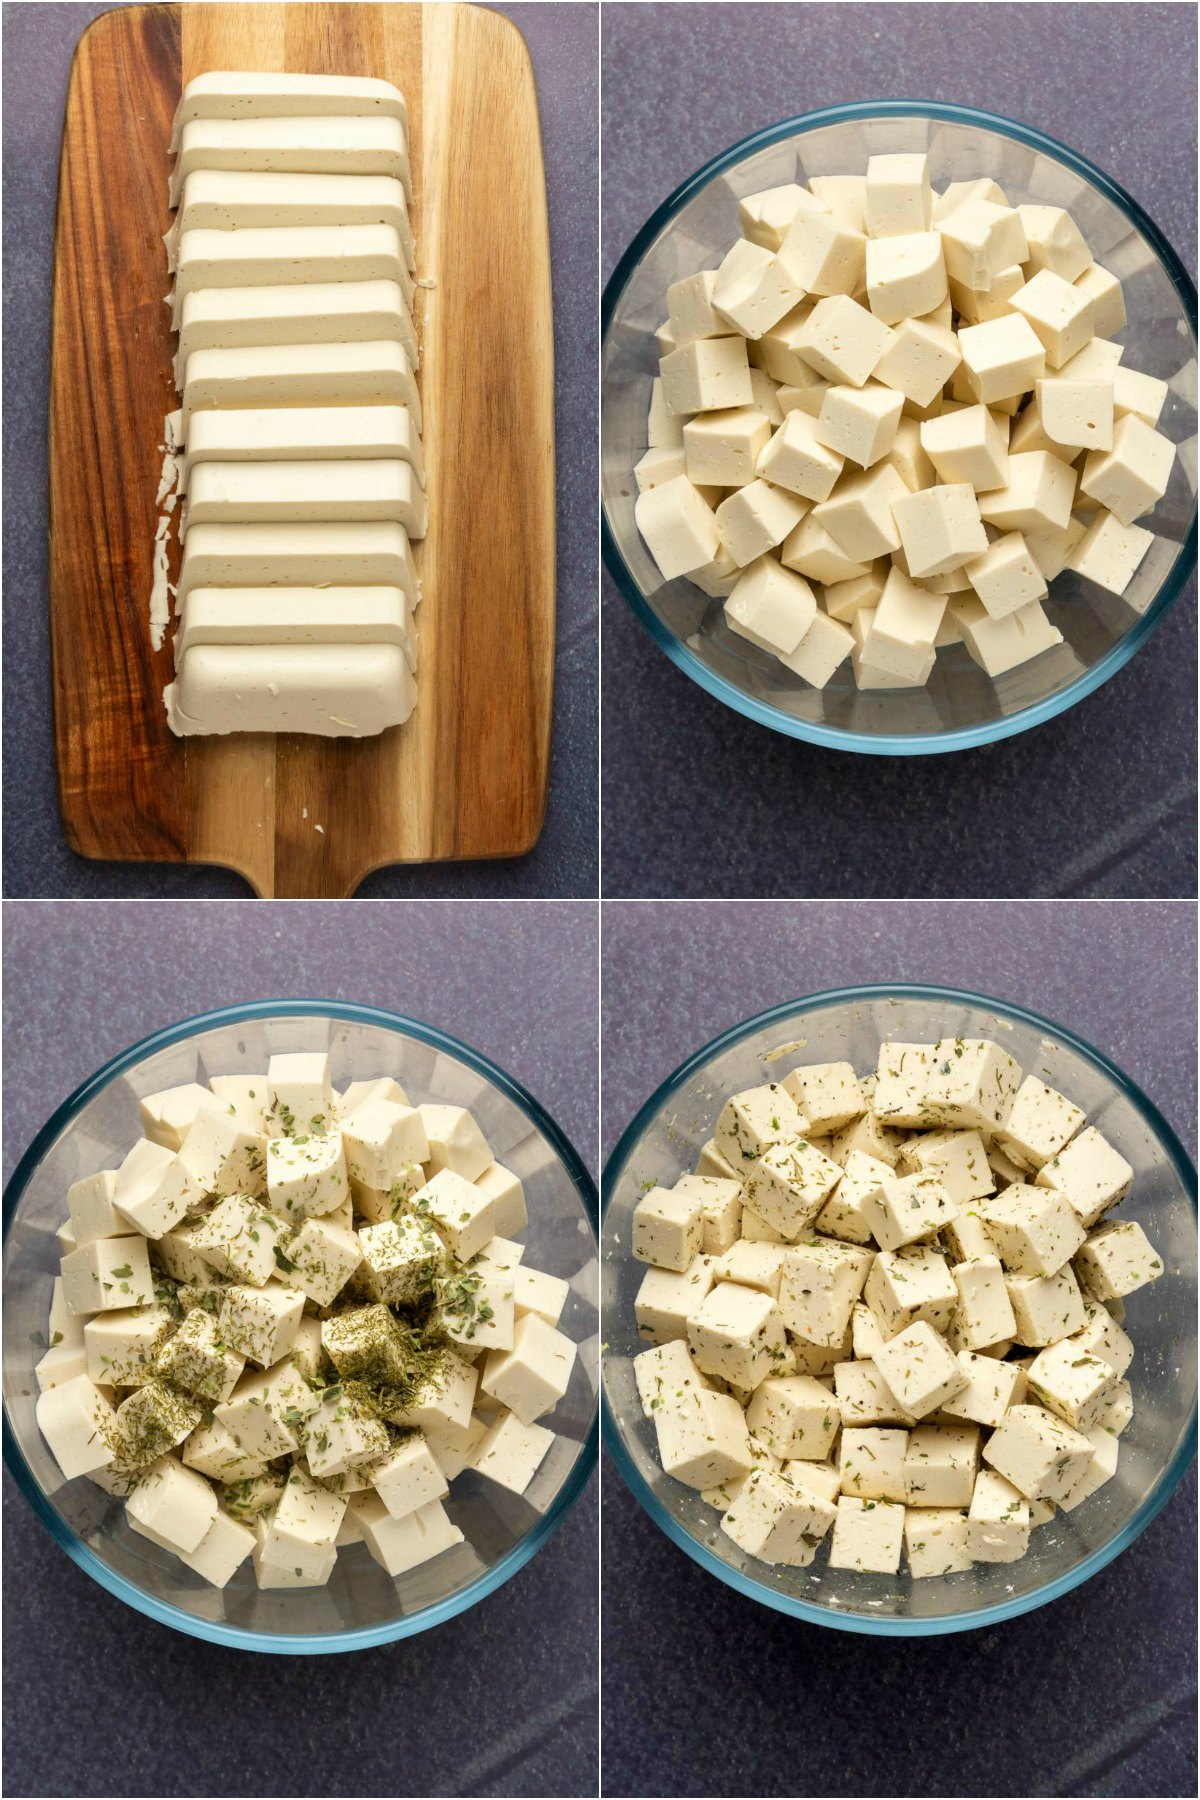 Step by step process photo collage of making vegan feta.